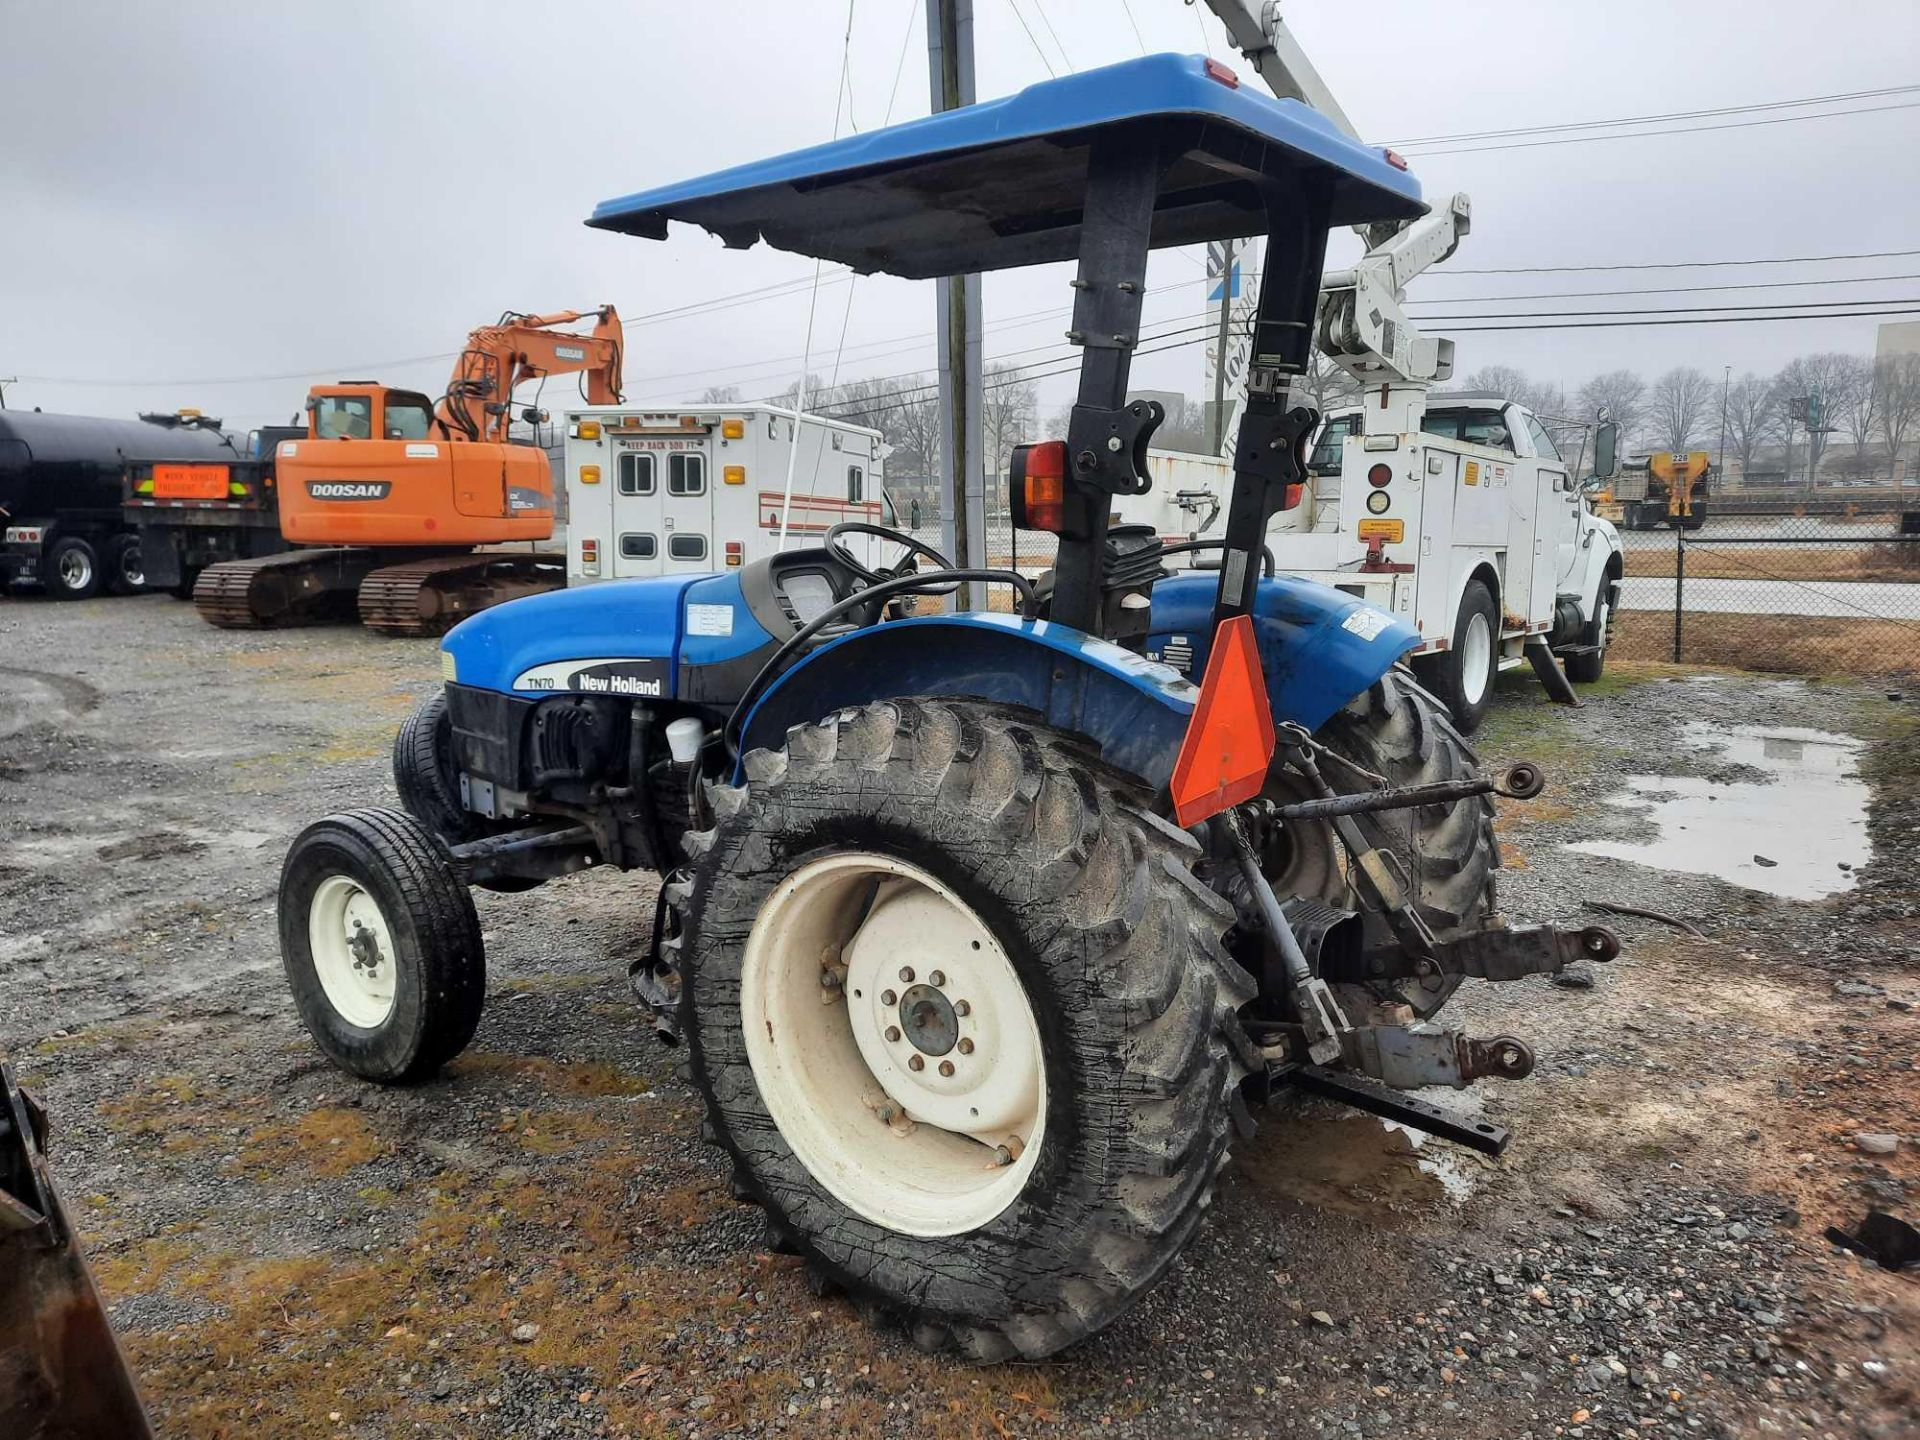 200 NEW HOLLAND TN70 TRACTOR - Image 2 of 4